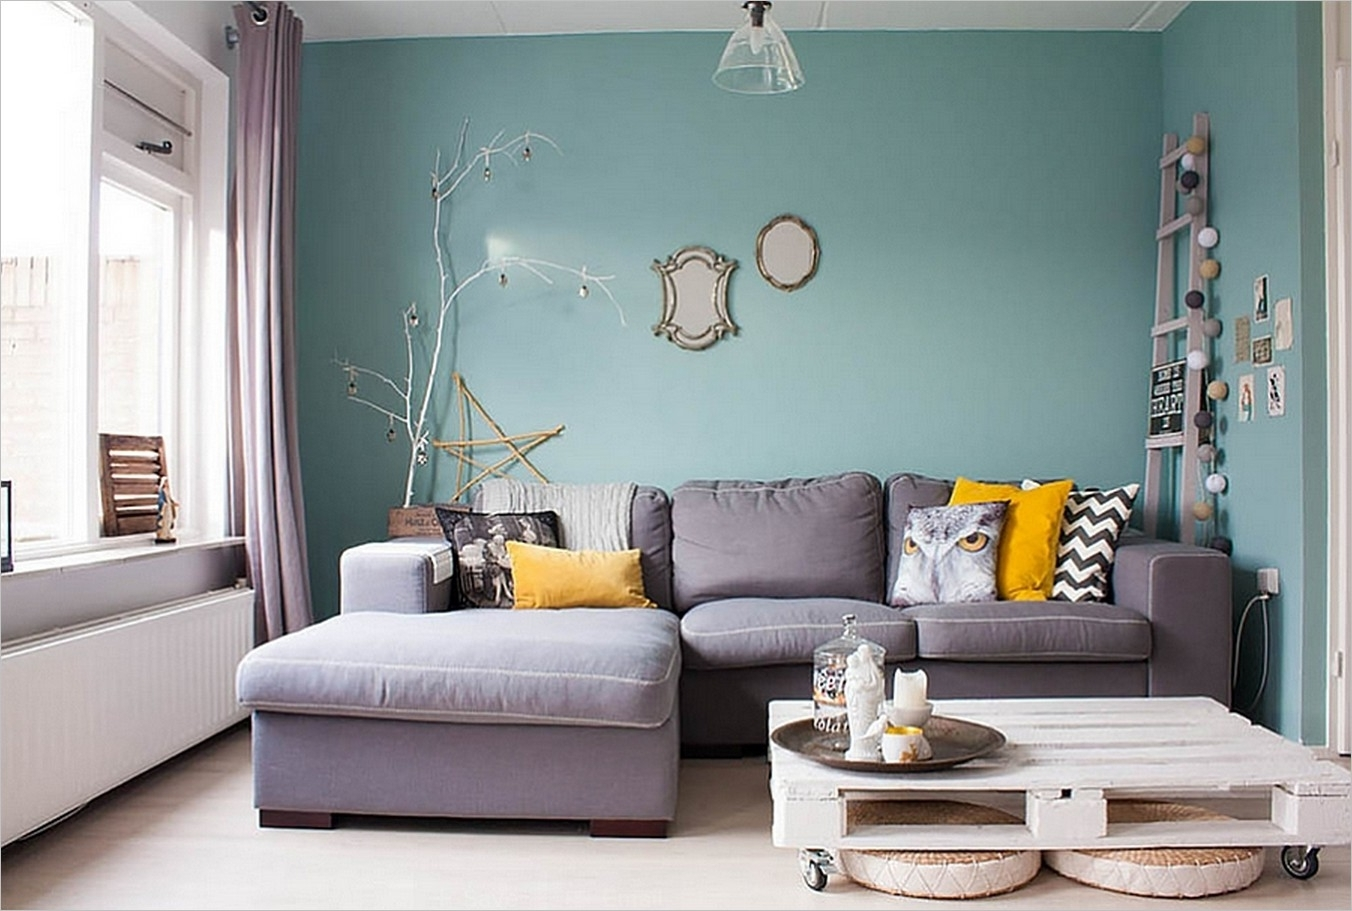 Preferred 2017 Color Trends For Your Home Interior, According To Paint Within Light Blue Wall Accents (View 10 of 15)